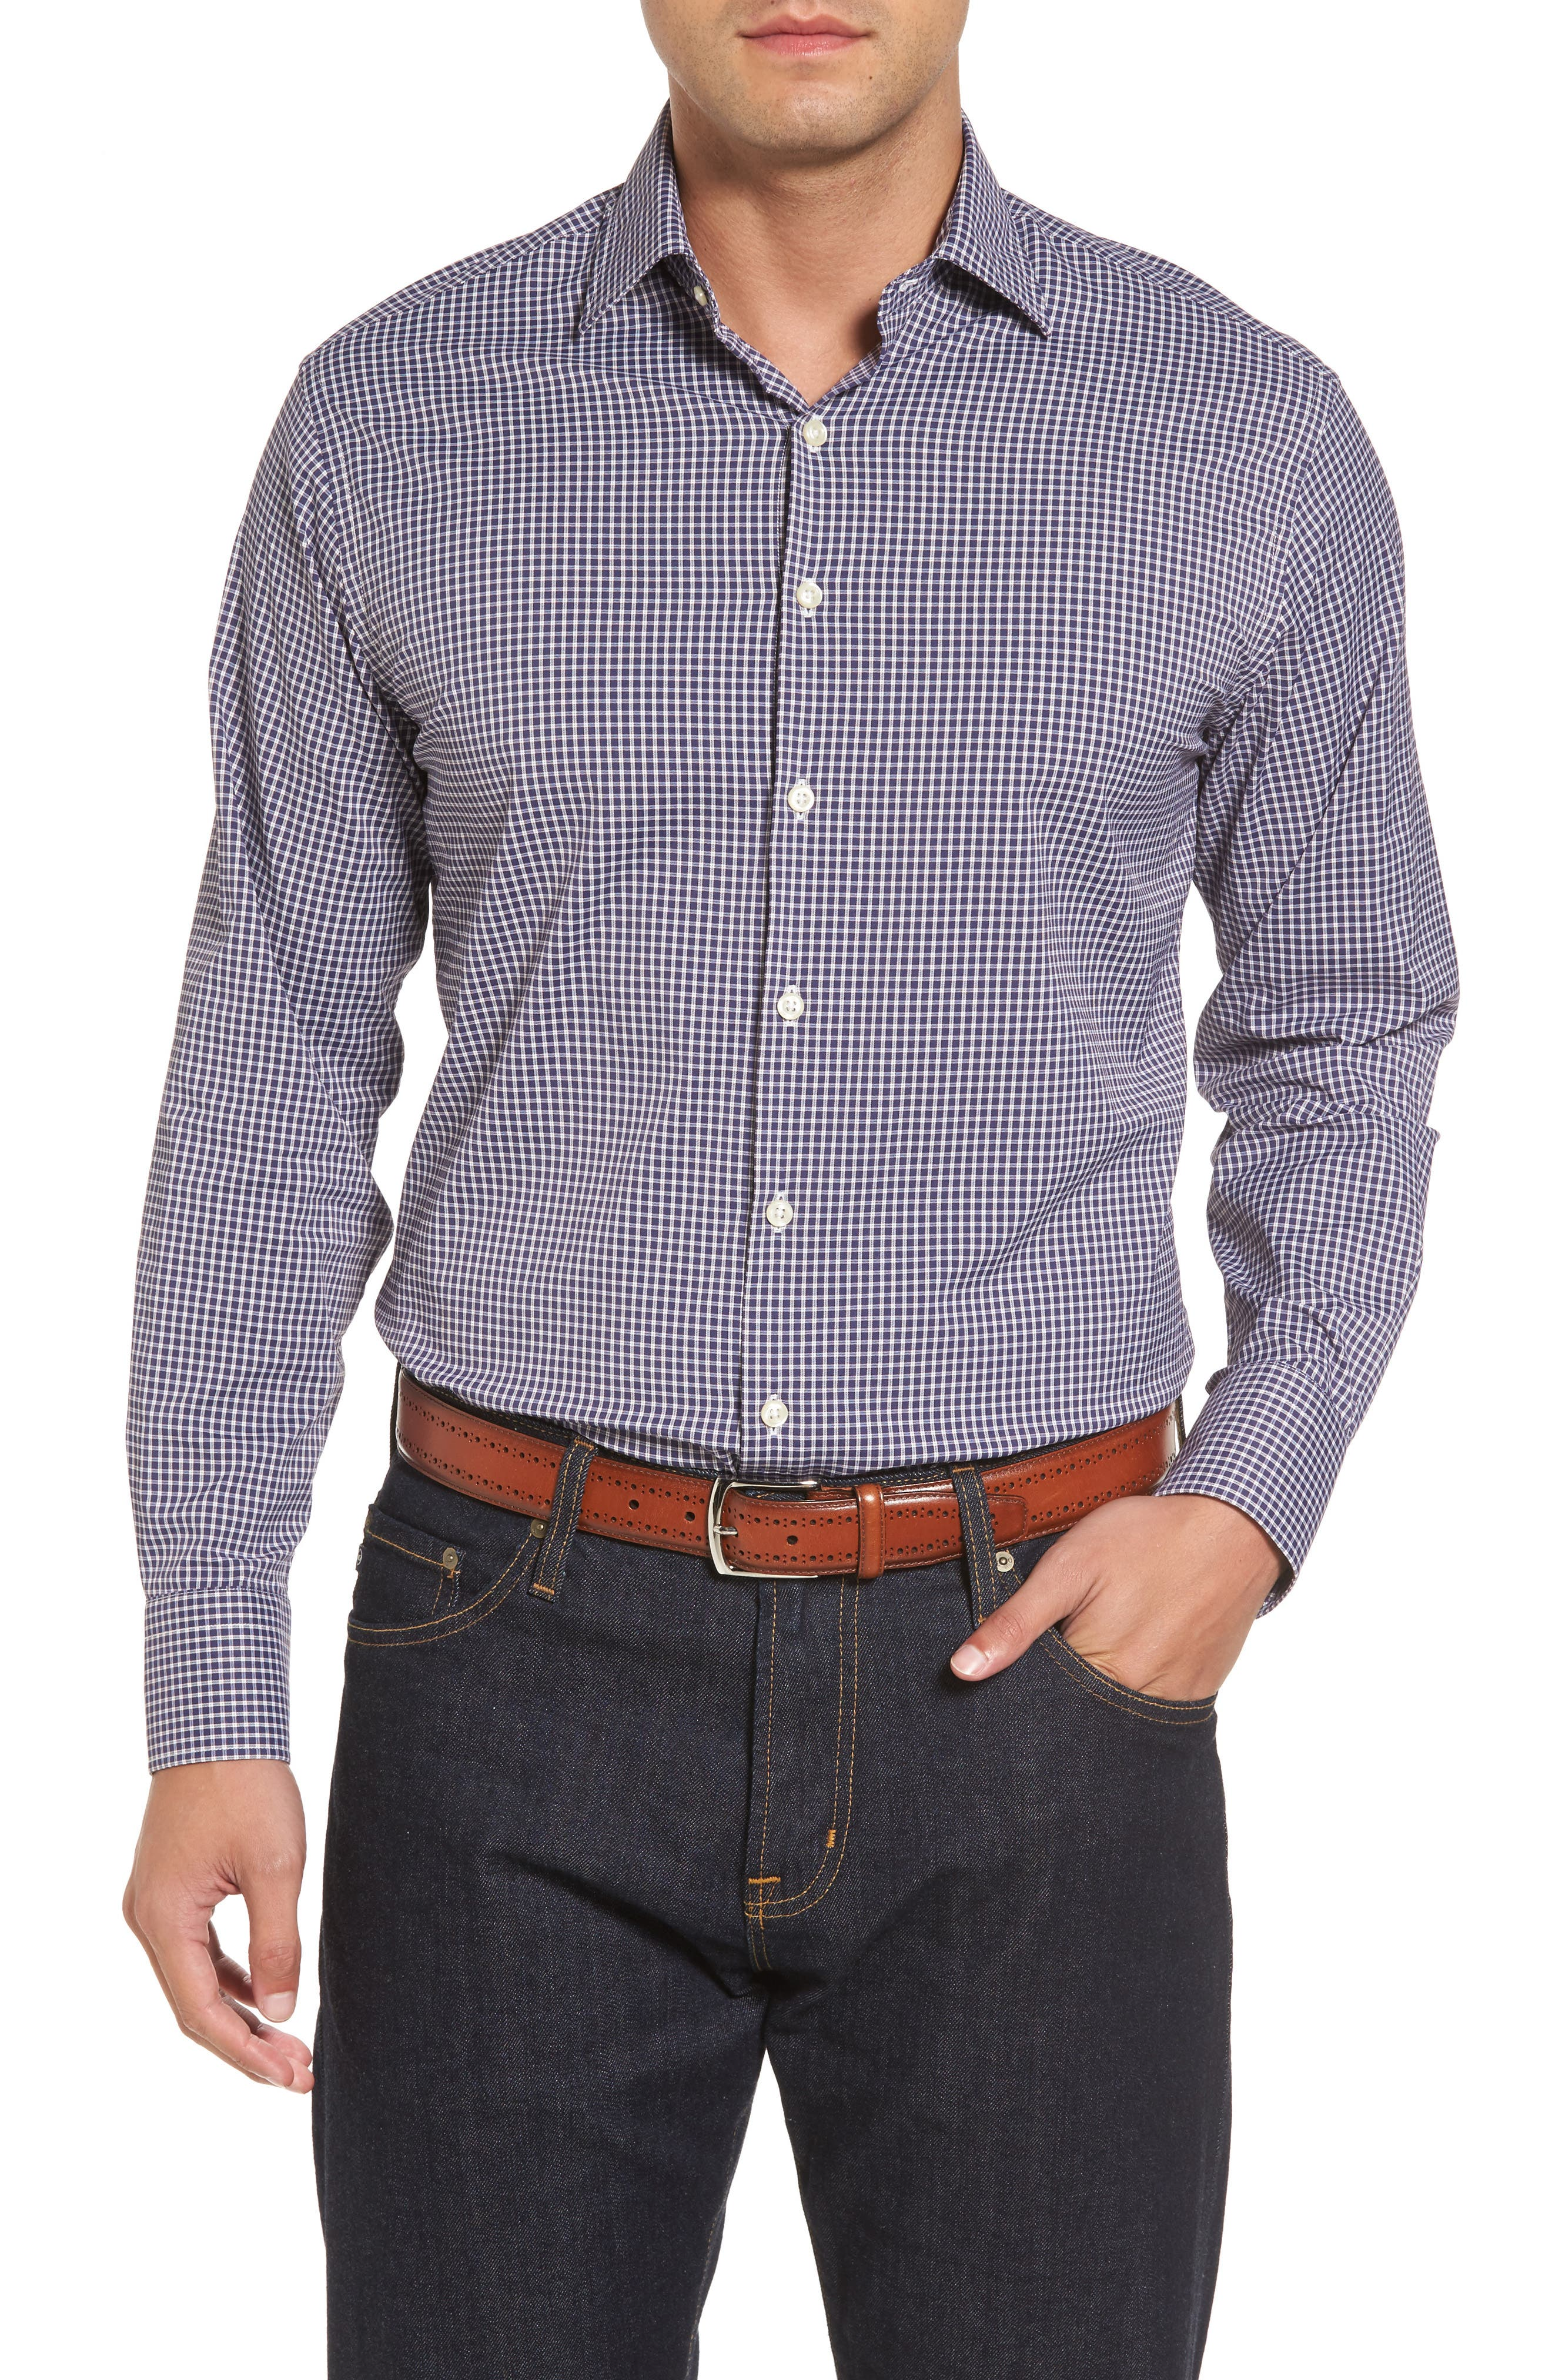 Alternate Image 1 Selected - Peter Millar Statler Regular Fit Check Performance Sport Shirt